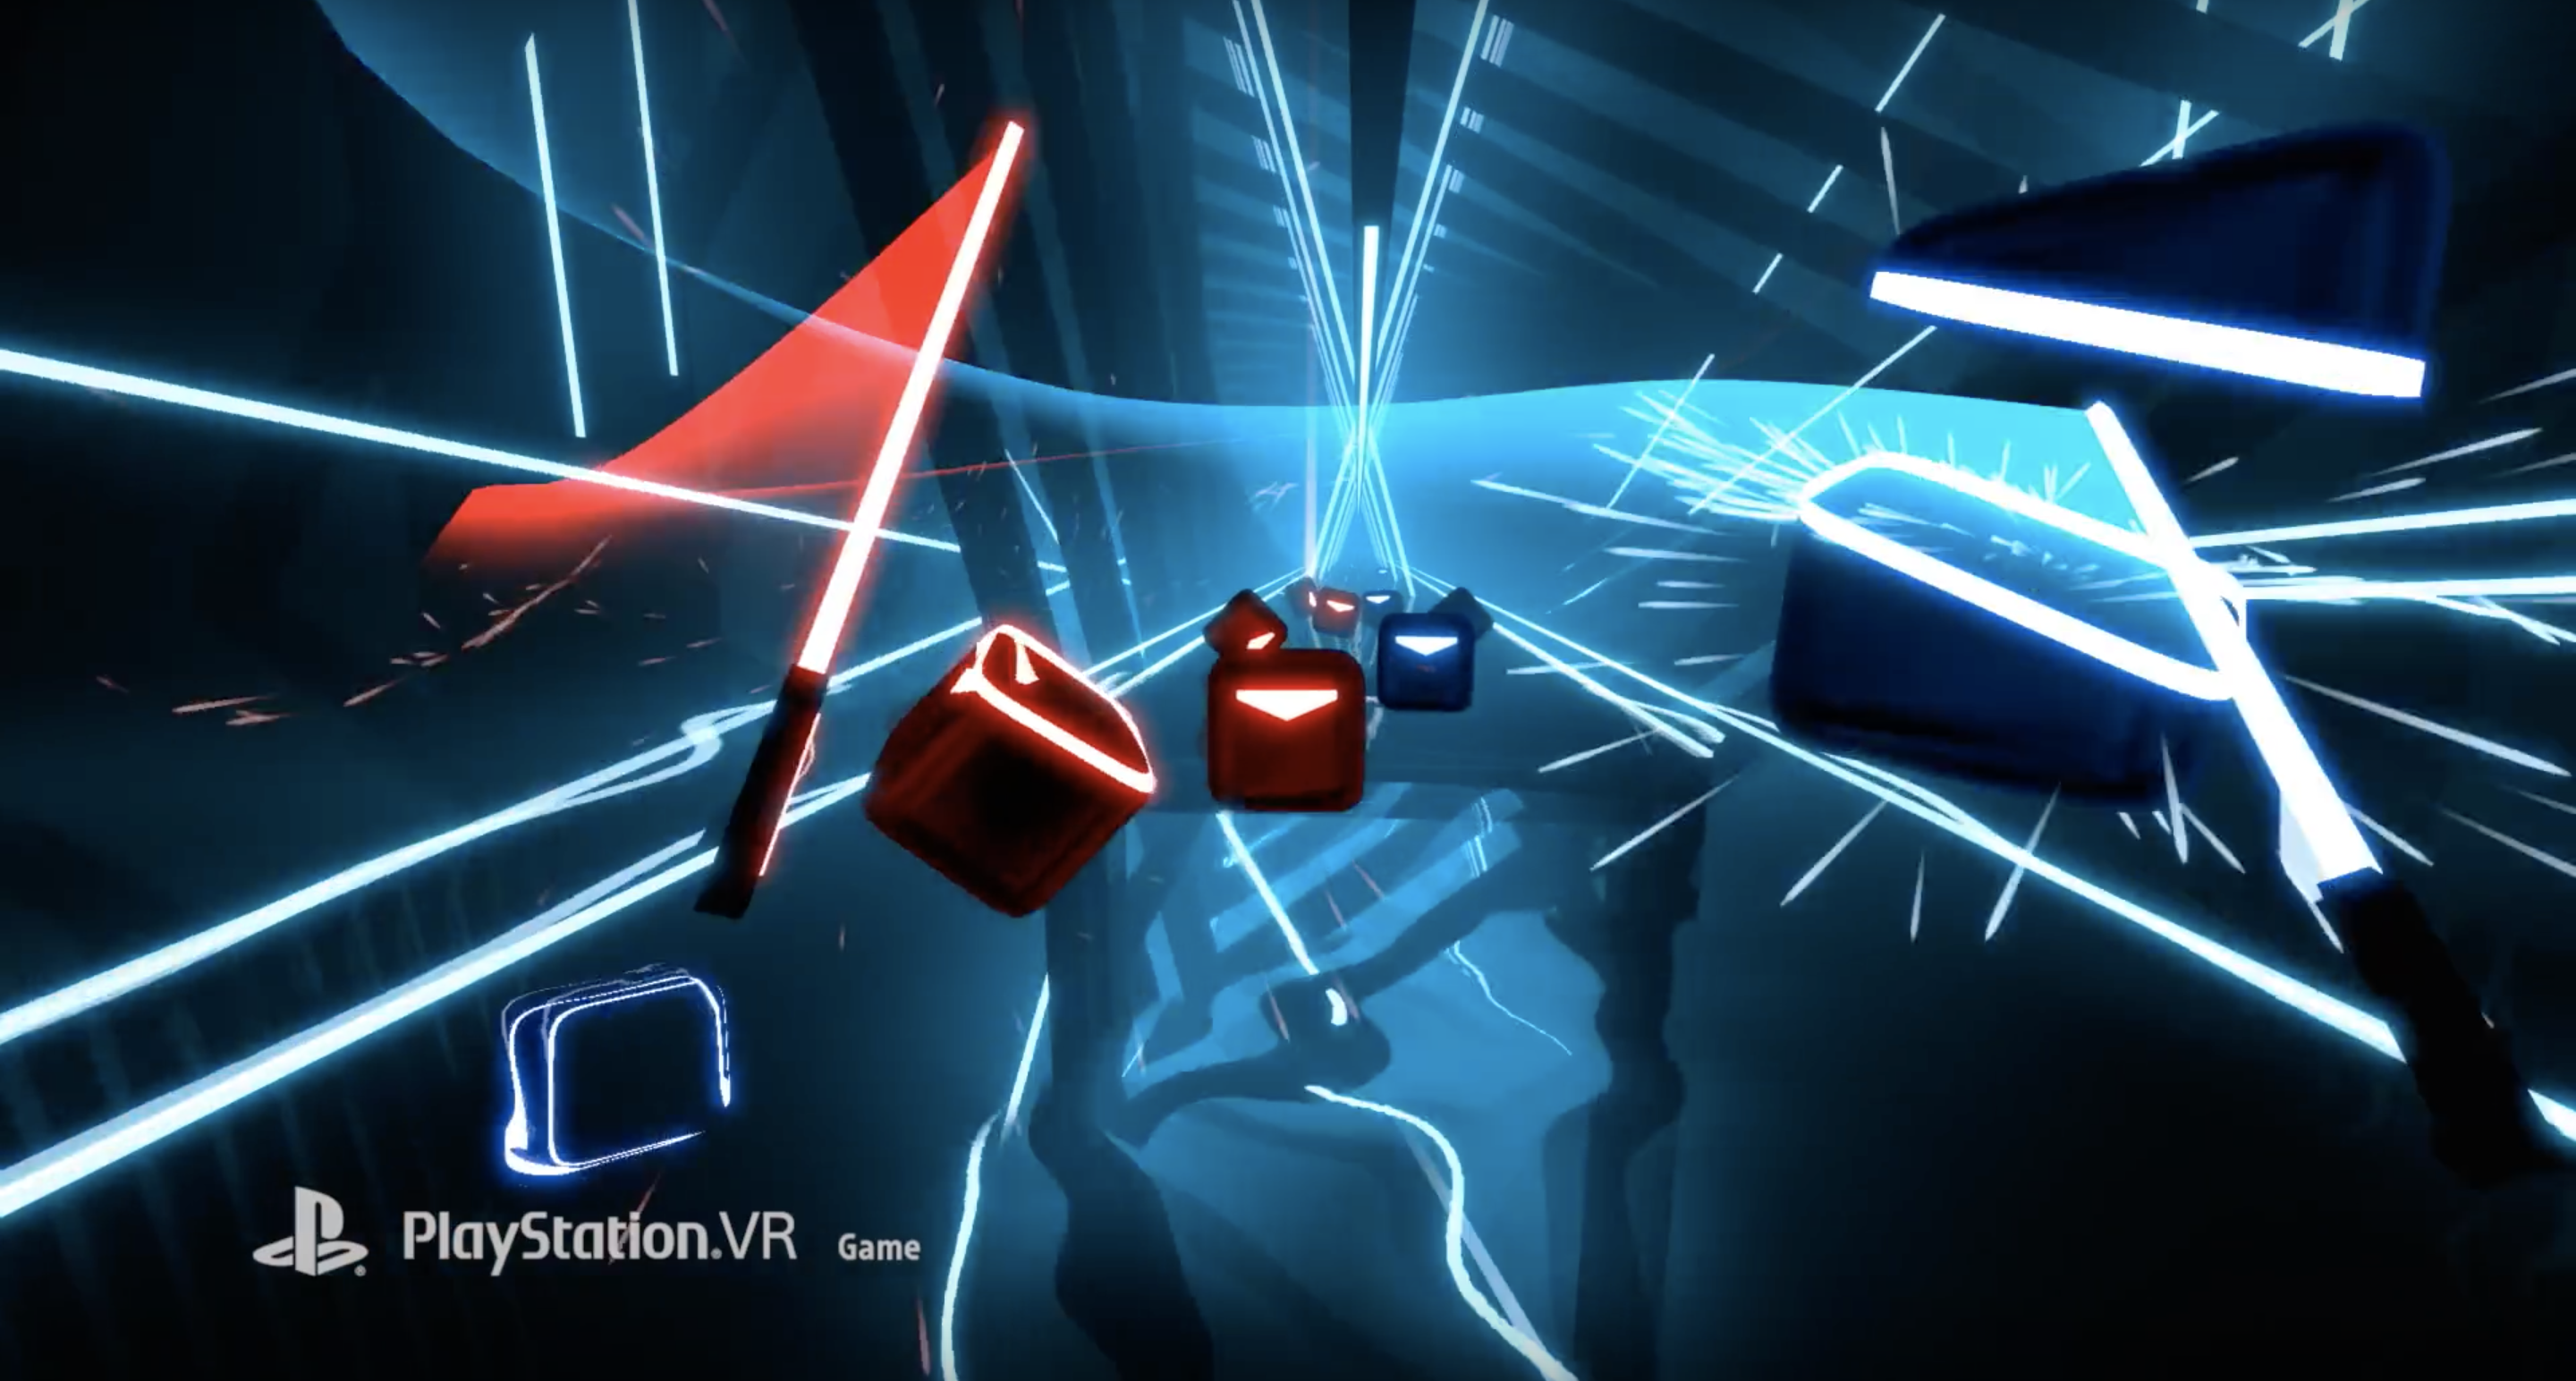 'Beat Saber' Update Brings 'Pro Mode', Multiplayer Badges, and Four More Modifiers